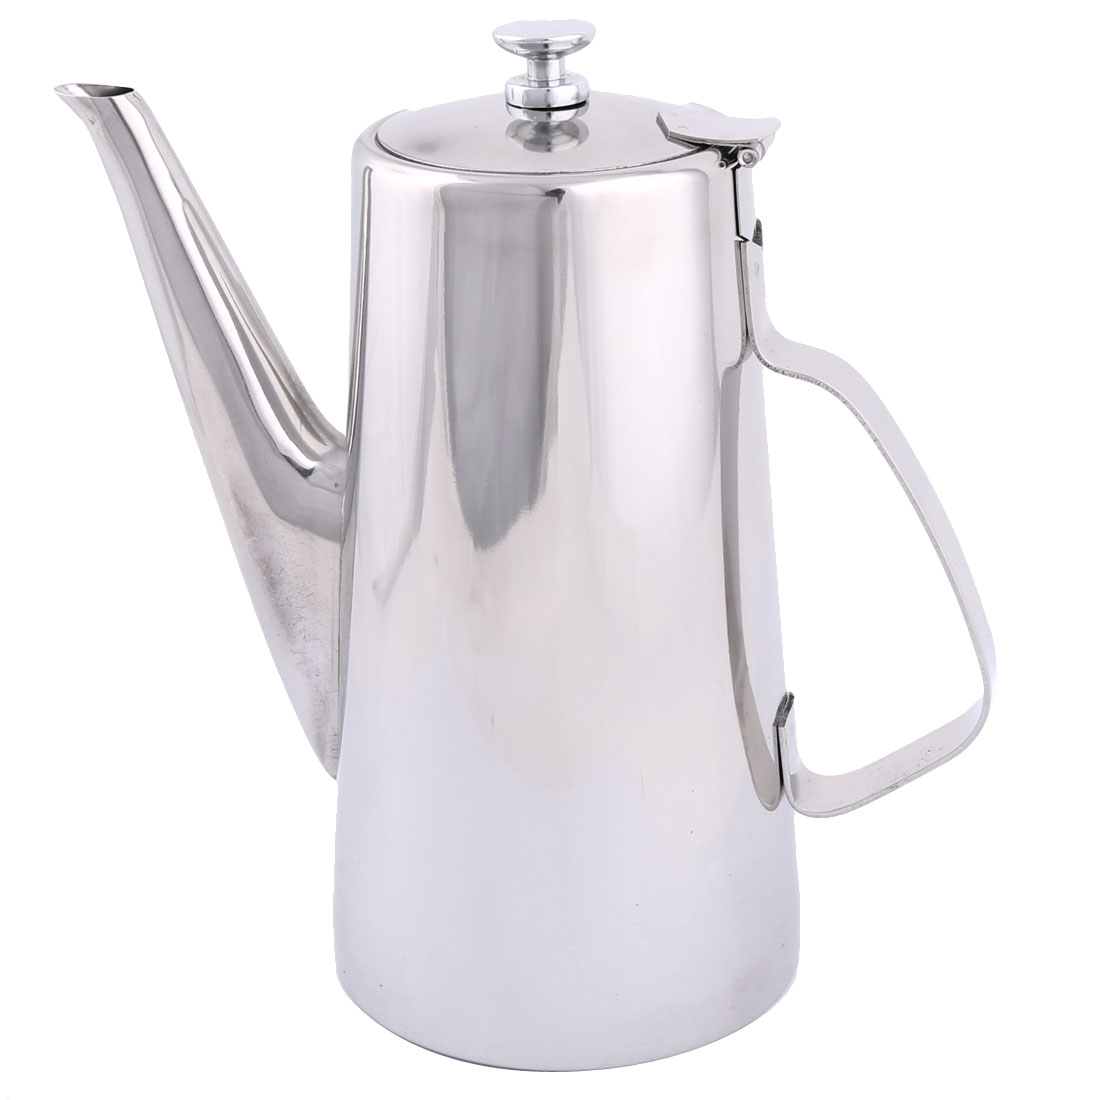 Household Stainless Steel Coffee Tea Water Pot Teapot Kettle Silver Tone 1.5L